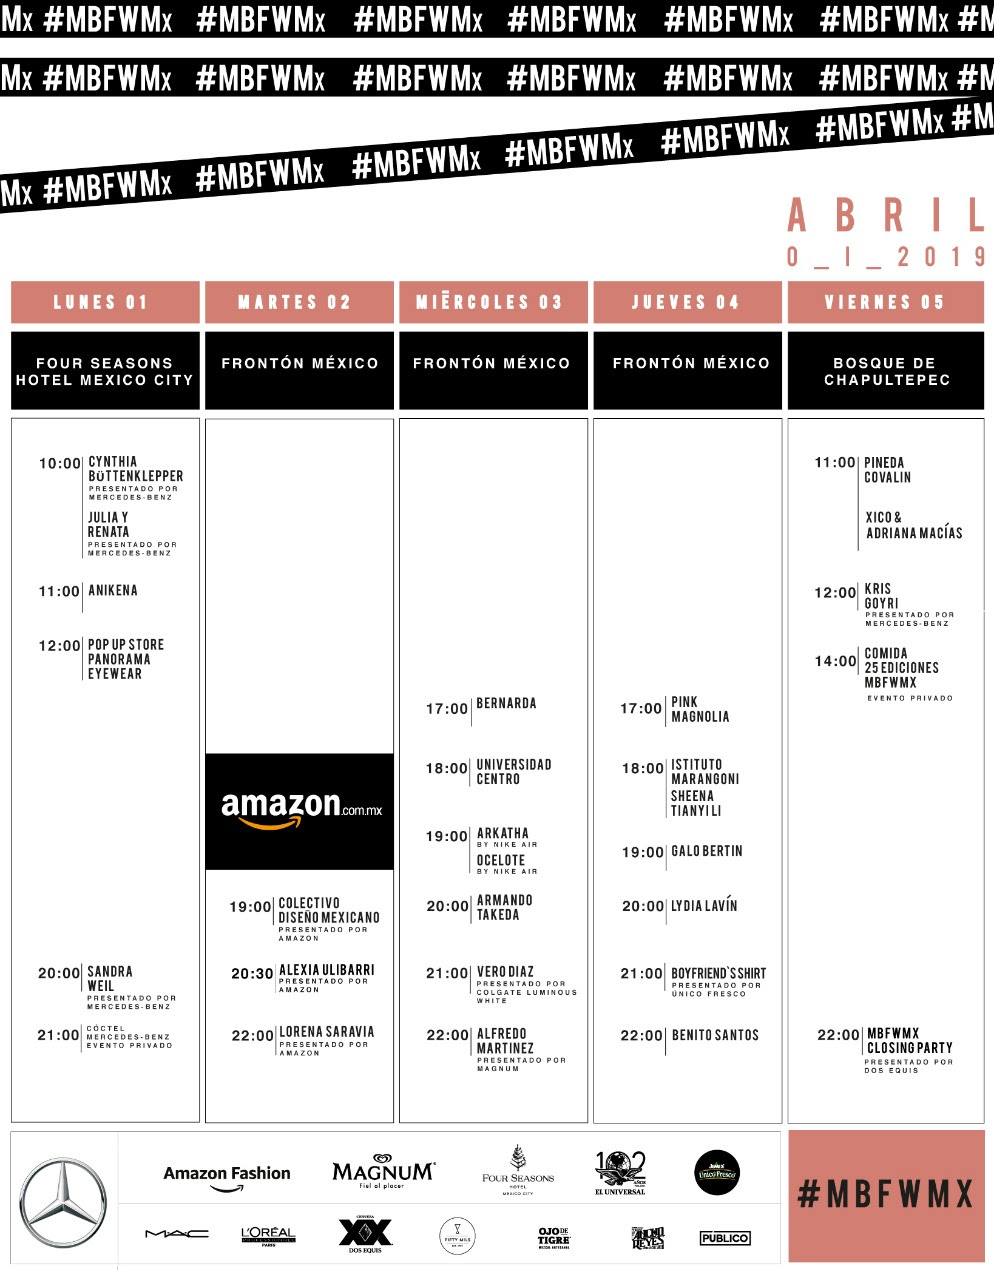 GeekMarloz Mercedes Benz Fashion Week México (1-5 abril)